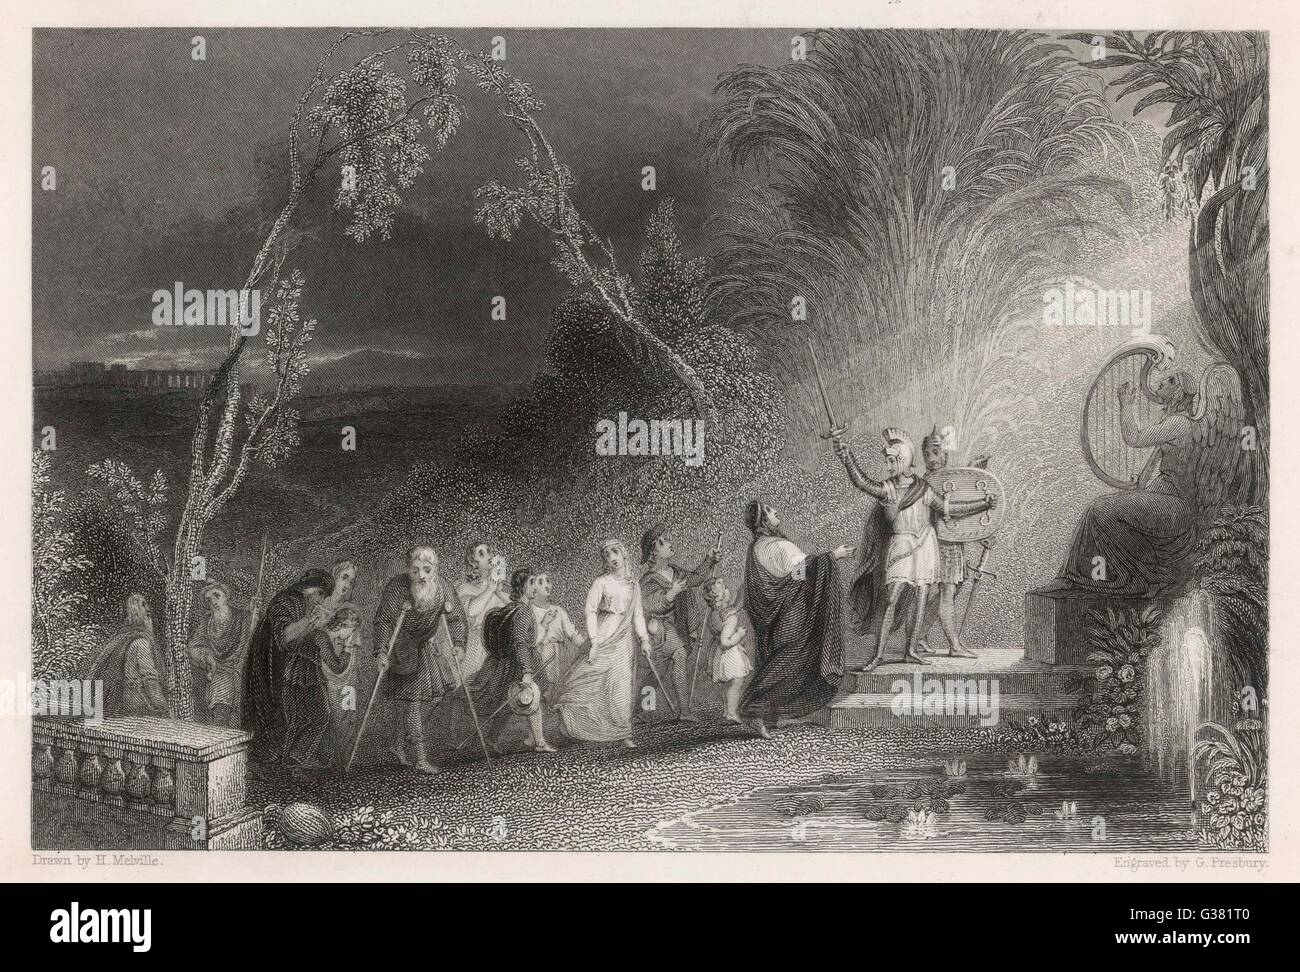 The pilgrims.          Date: First published: 1678 - Stock Image